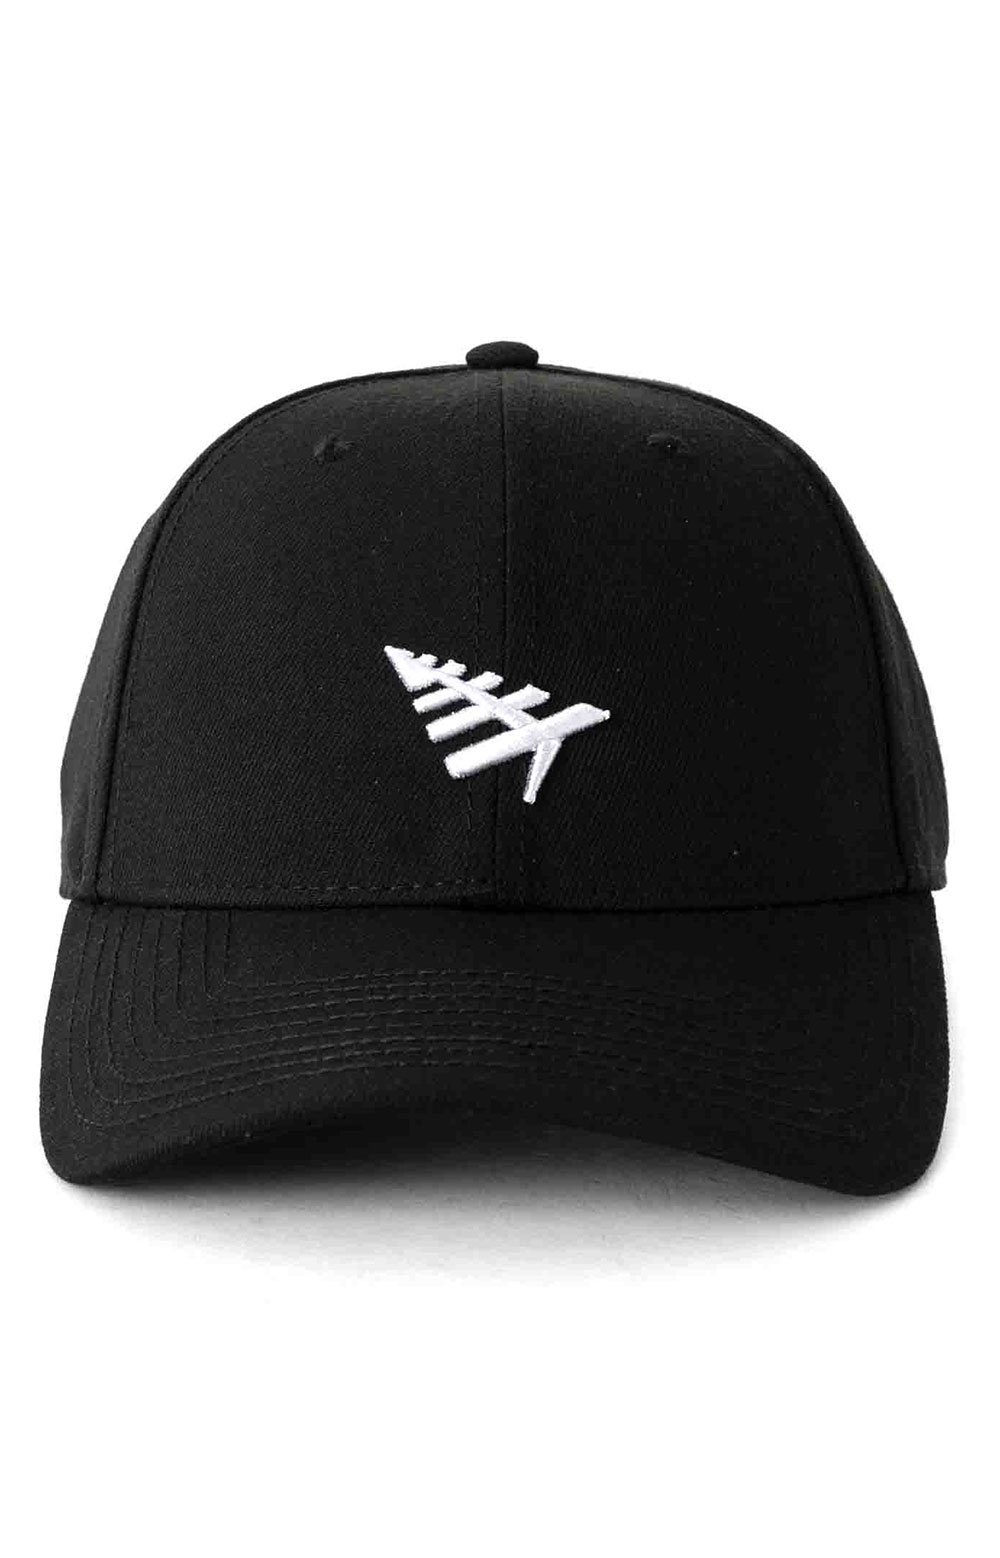 Icon II Dad Hat w/ No Tag - Black 2